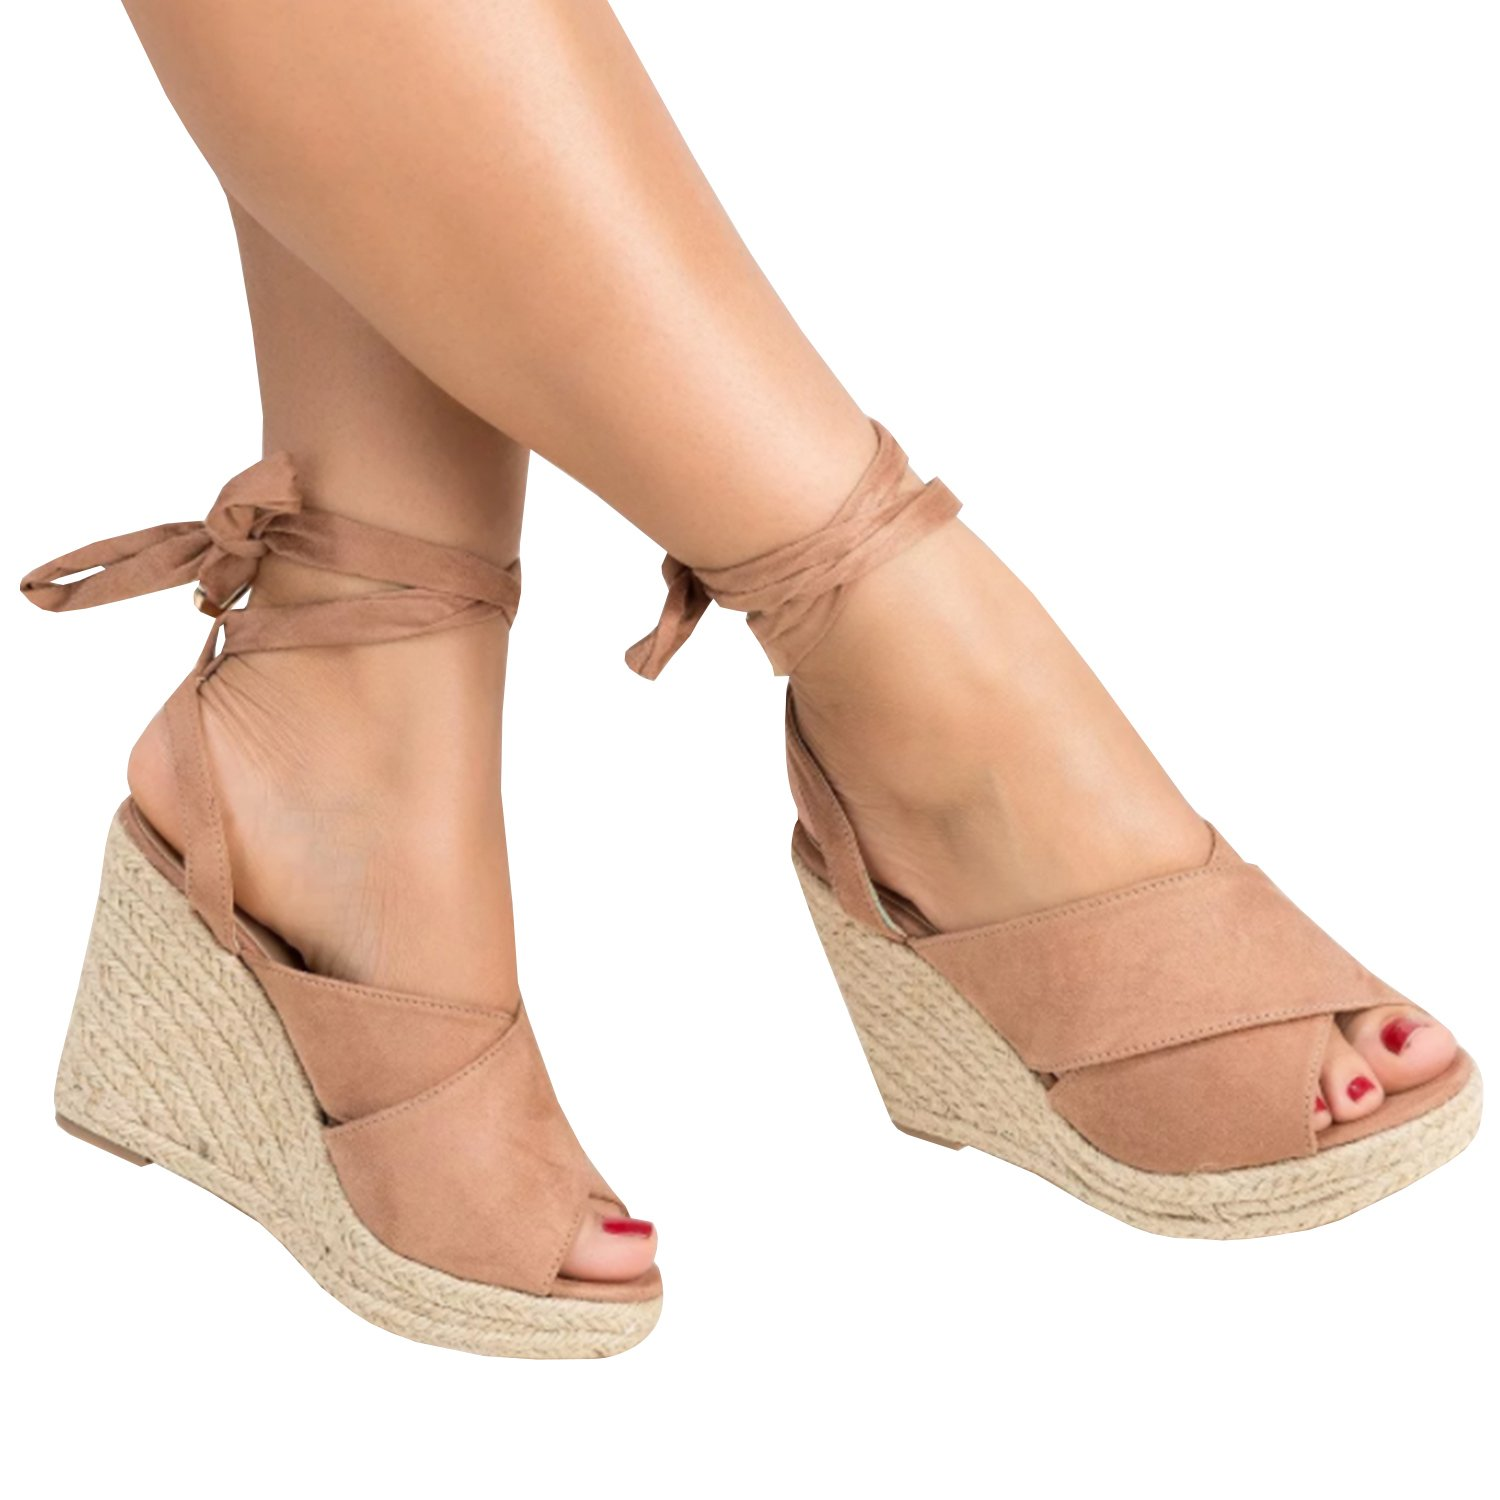 38cdf5be8d4c Womens Summer Wedge Sandals Espadrilles Heels Ankle Strap Platform Sandal  Shoes These wedge shoes are made with faux leather and Espadrille materials